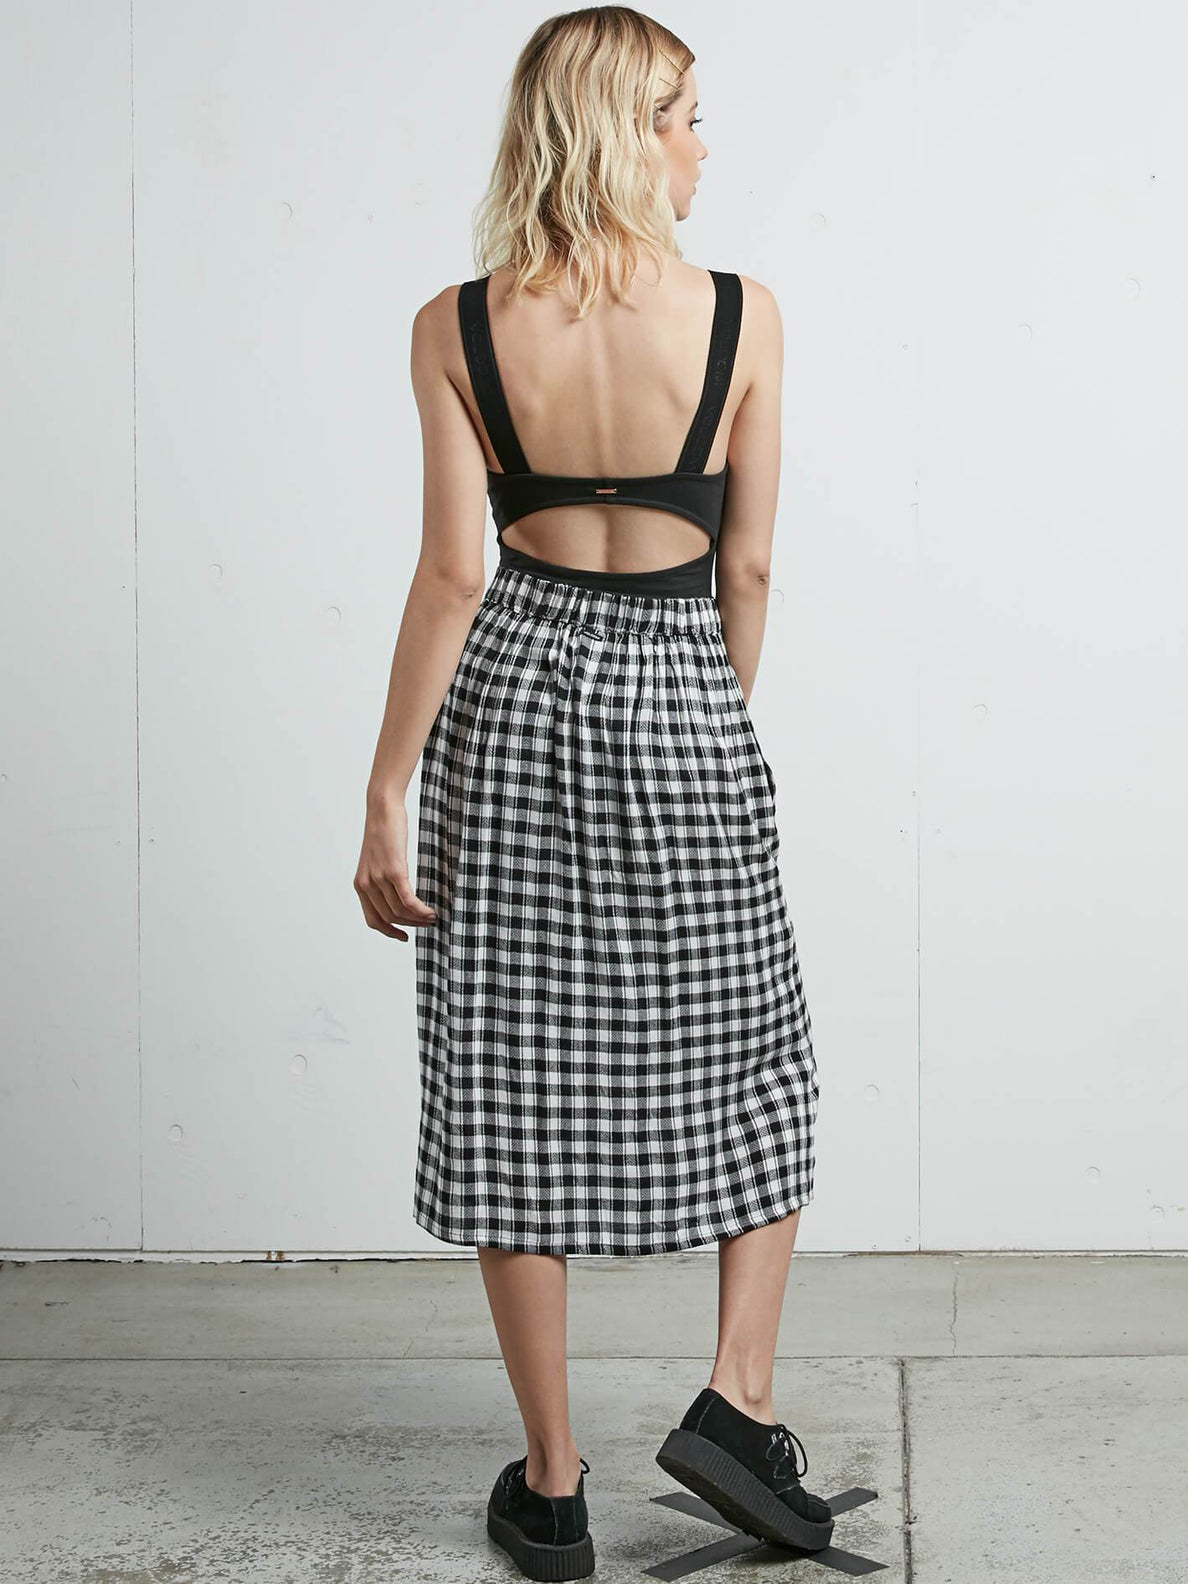 Get To Steppin Skirt In Black, Back View